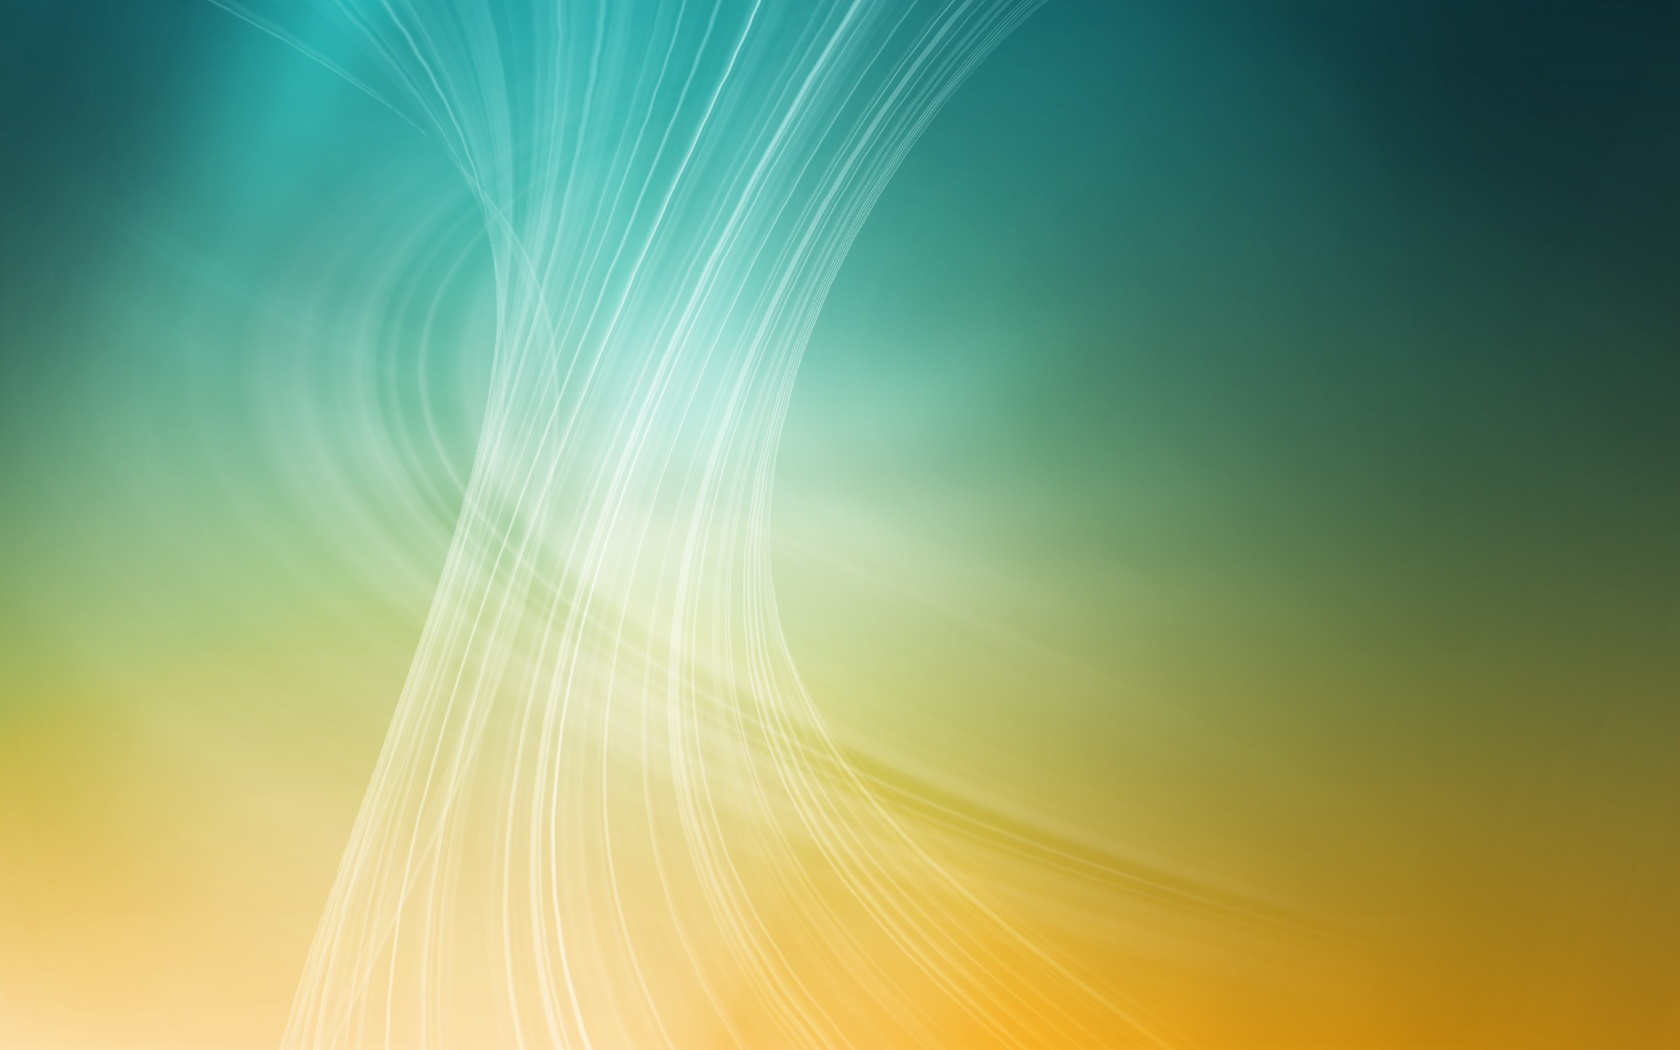 abstract wallpapers hd yellow wave